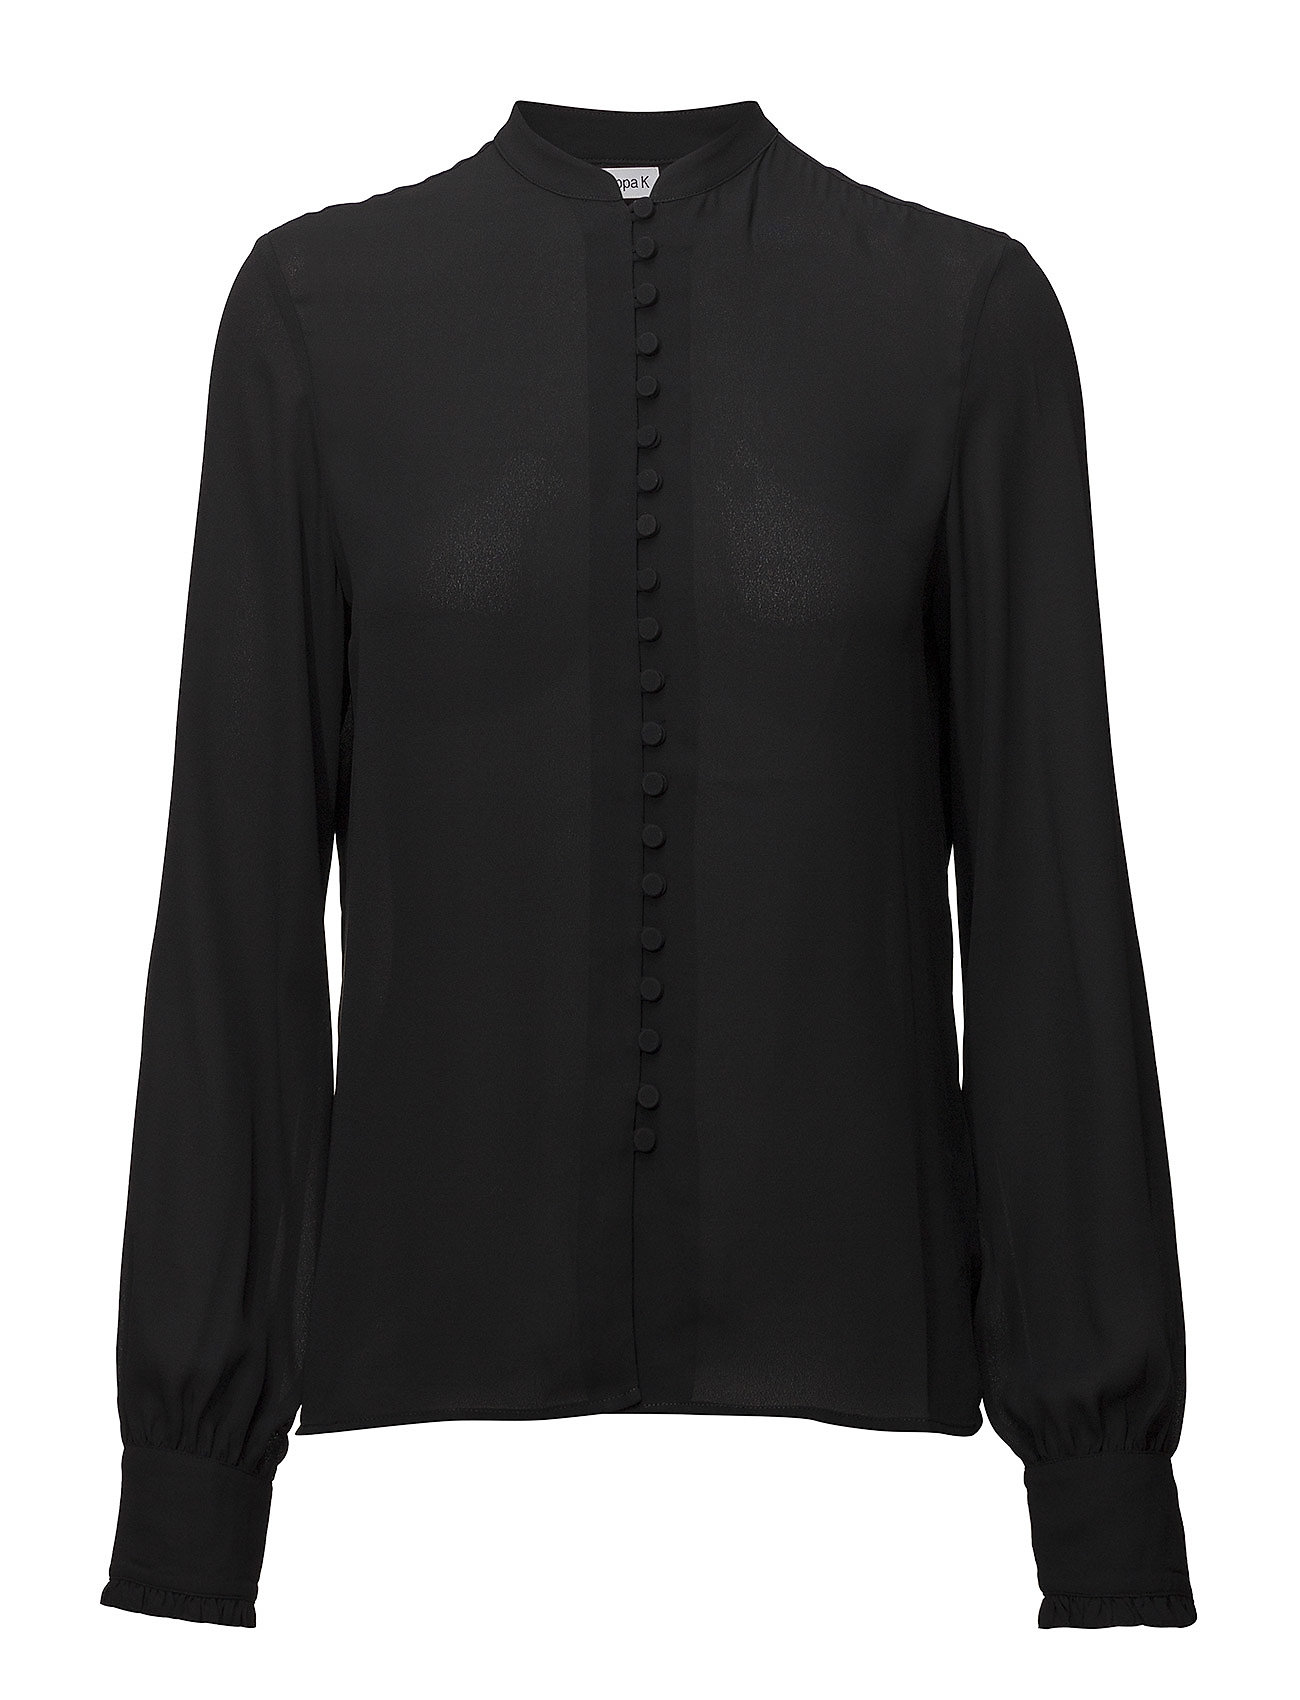 Filippa K Sheer Button Blouse - BLACK